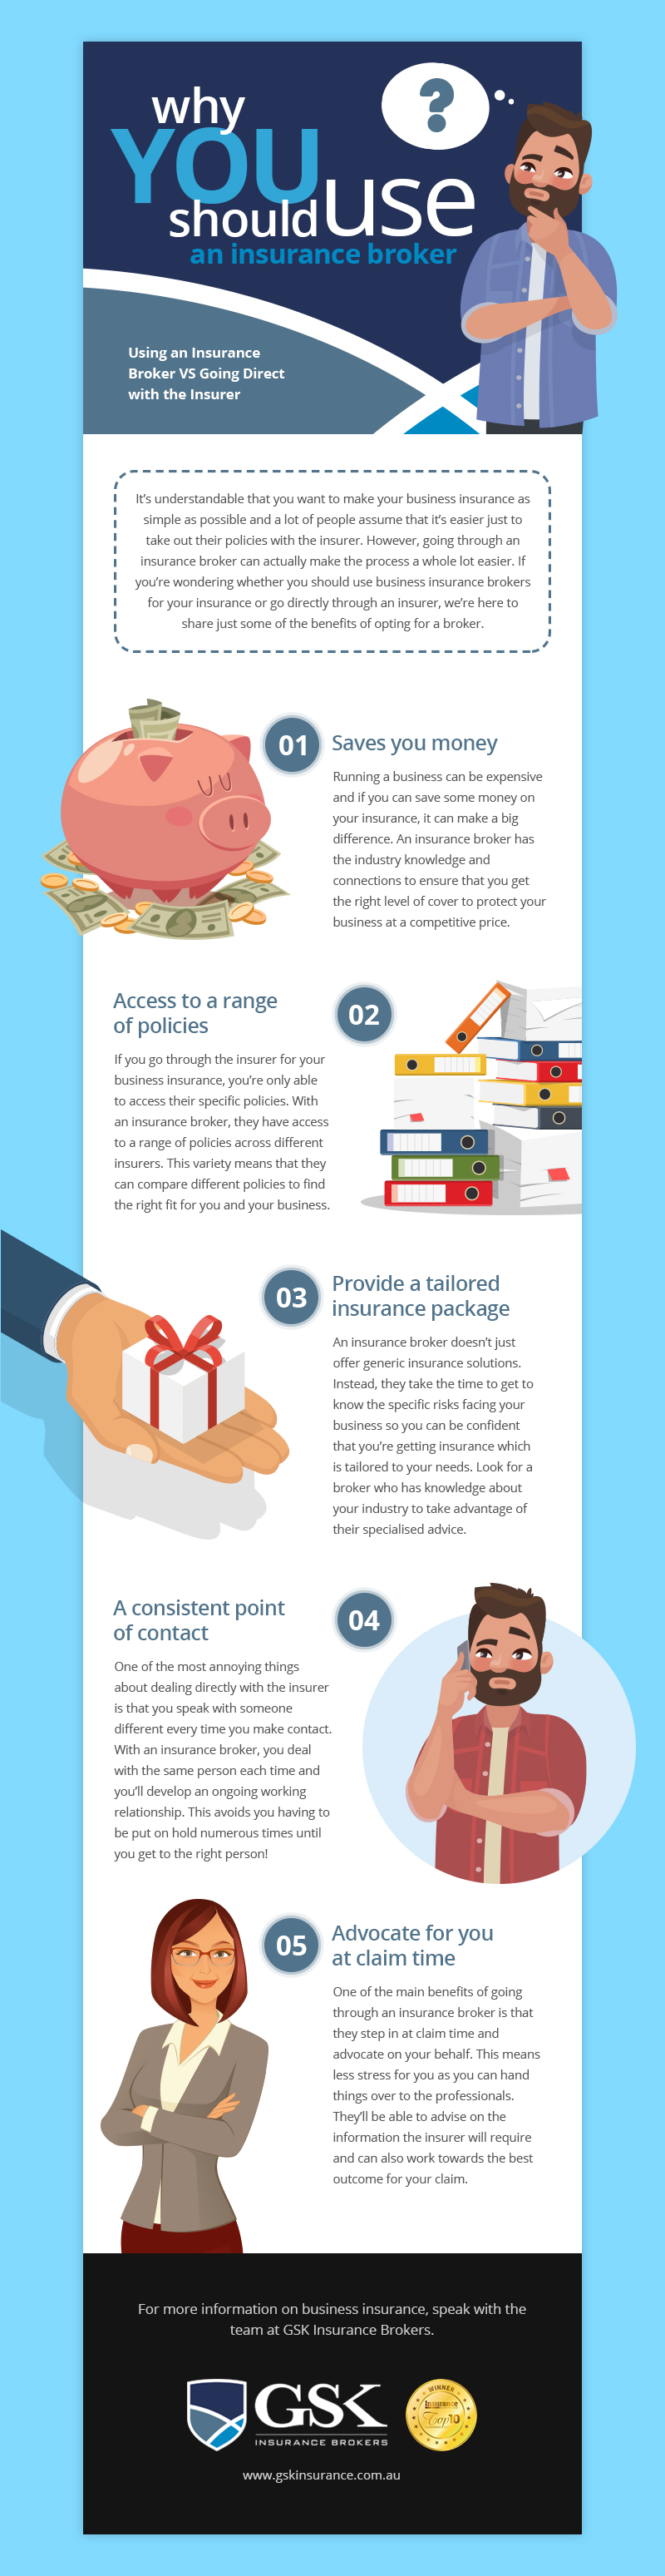 Why you should use an insurance broker infographic